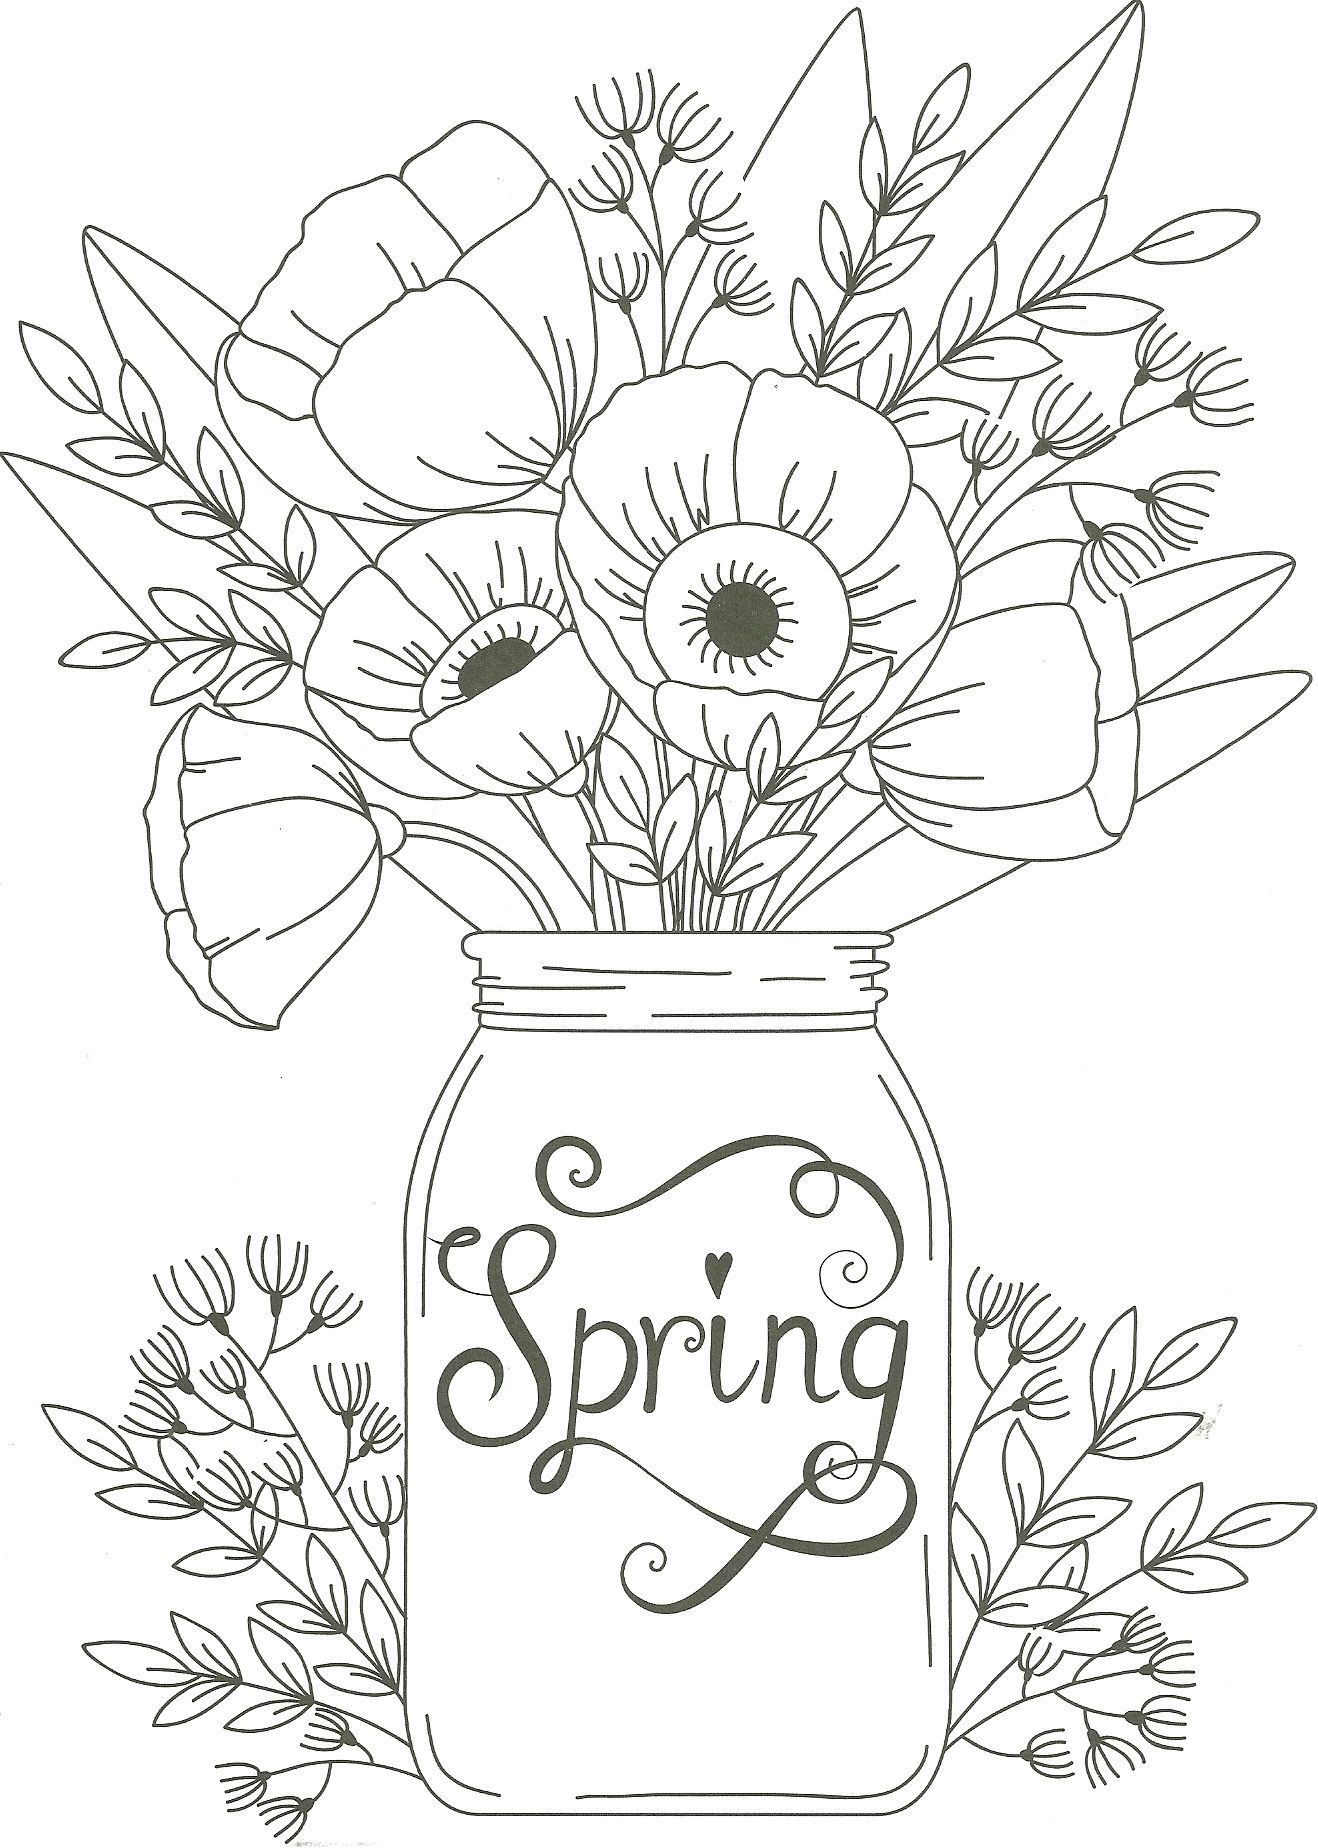 Spring Mason Jar Floral Coloring Page Spring Coloring Pages Spring Coloring Sheets Printable Flower Coloring Pages